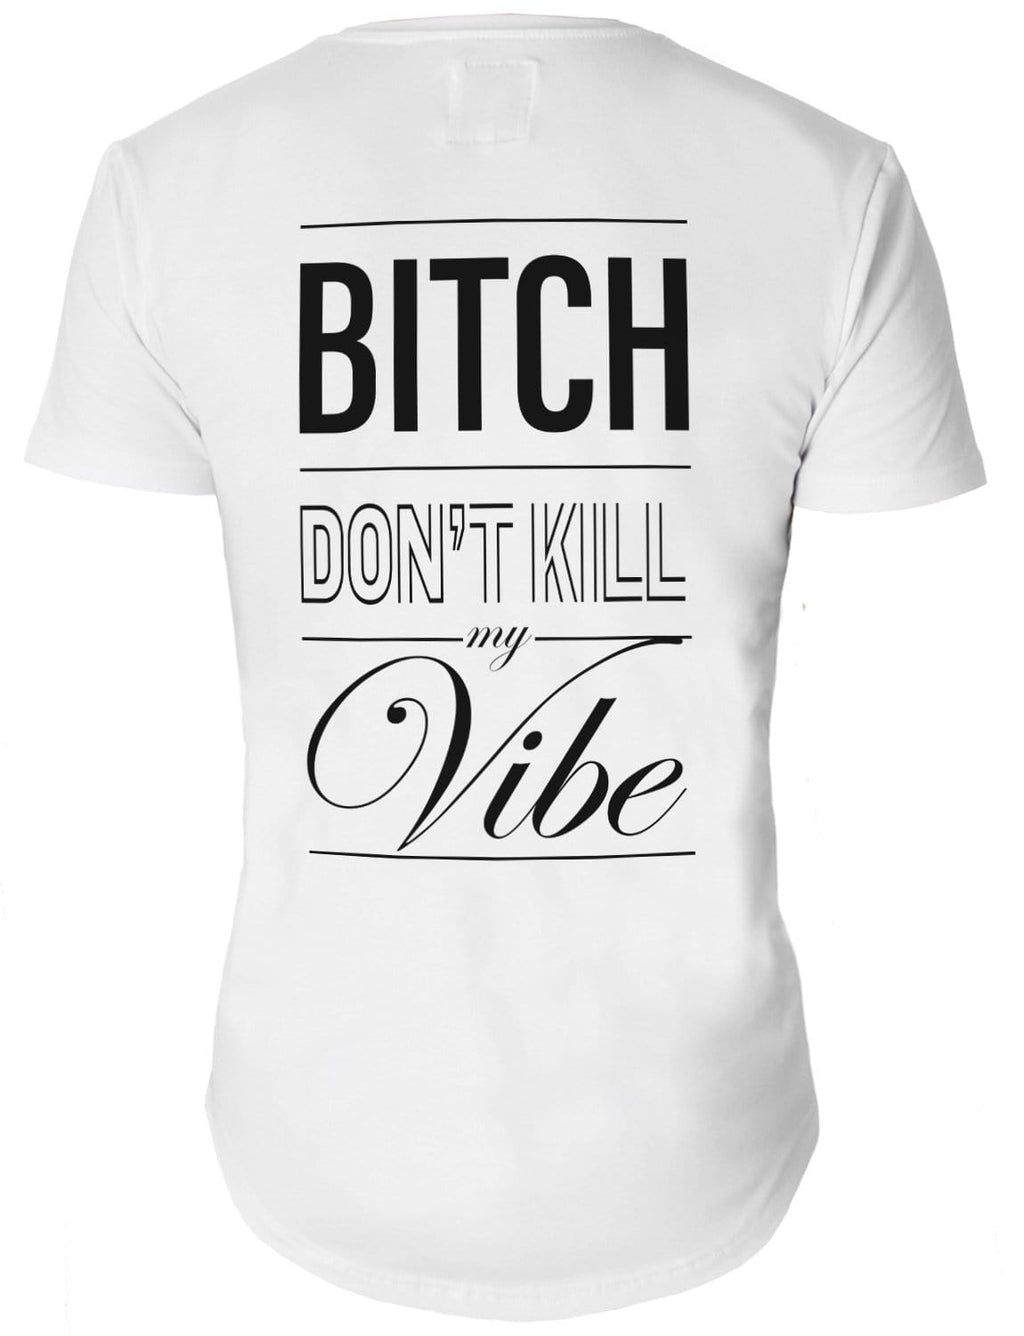 offensive t-shirt for men